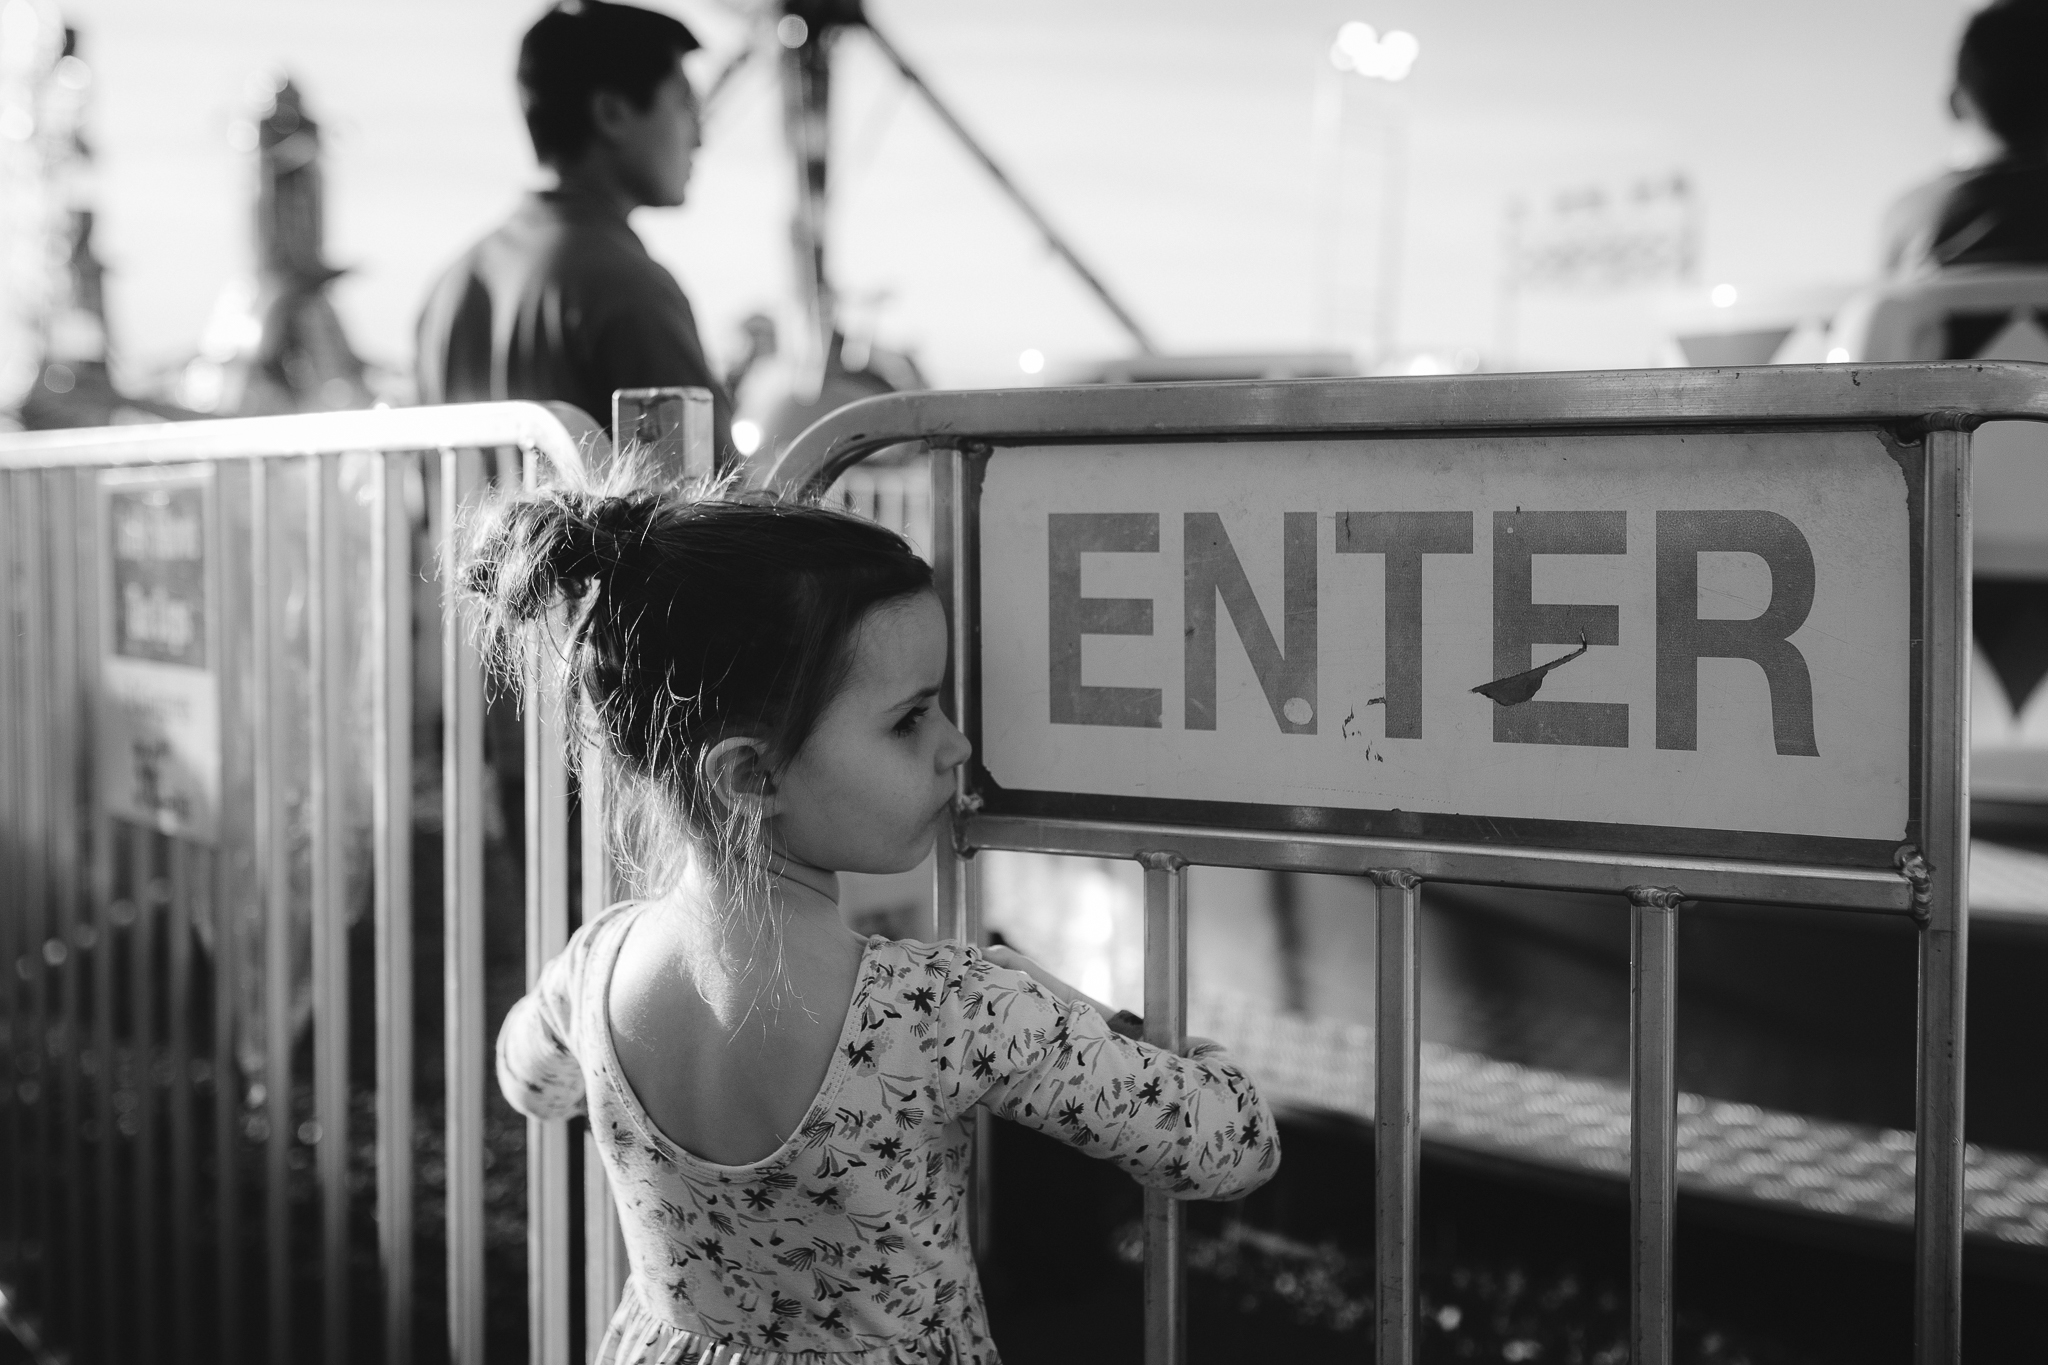 black and white enter sign carnival ride girl waiting summer Ashburn Loudoun Northern Virginia family lifestyle documentary childhood Marti Austin Photography